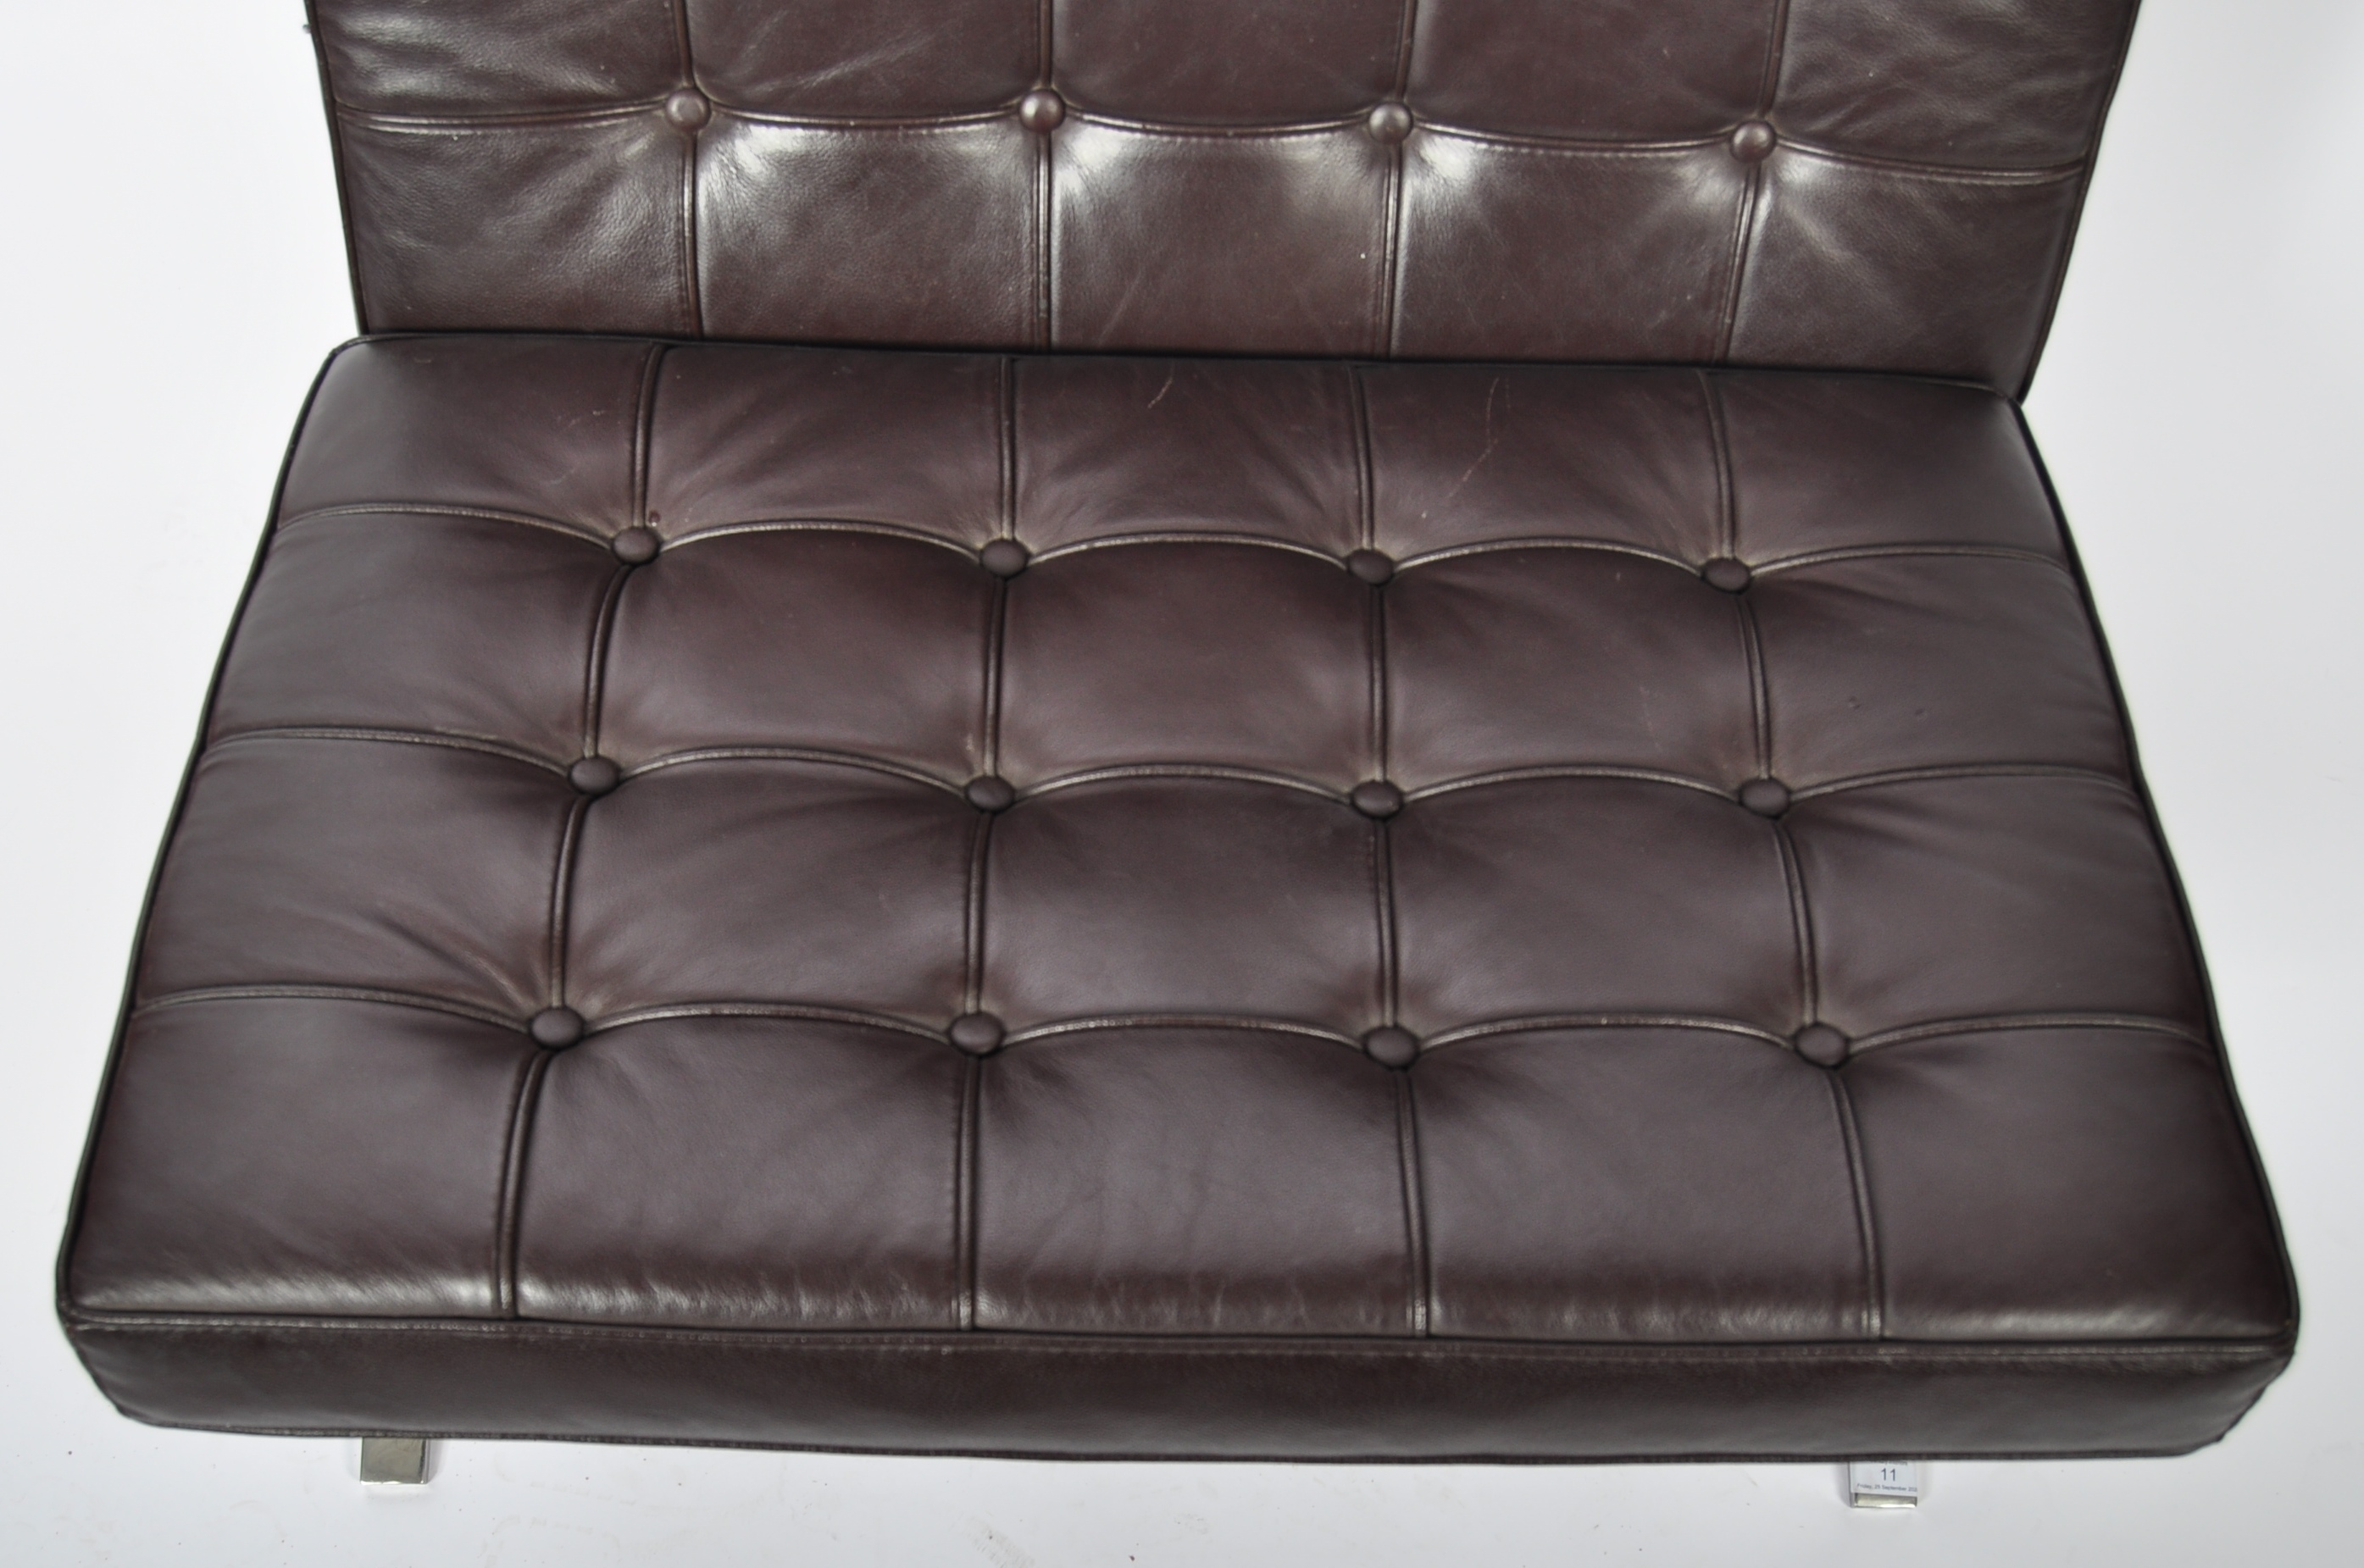 CHROME X-FRAME BARCELONA CHAIR IN BROWN LEATHER - Image 4 of 6